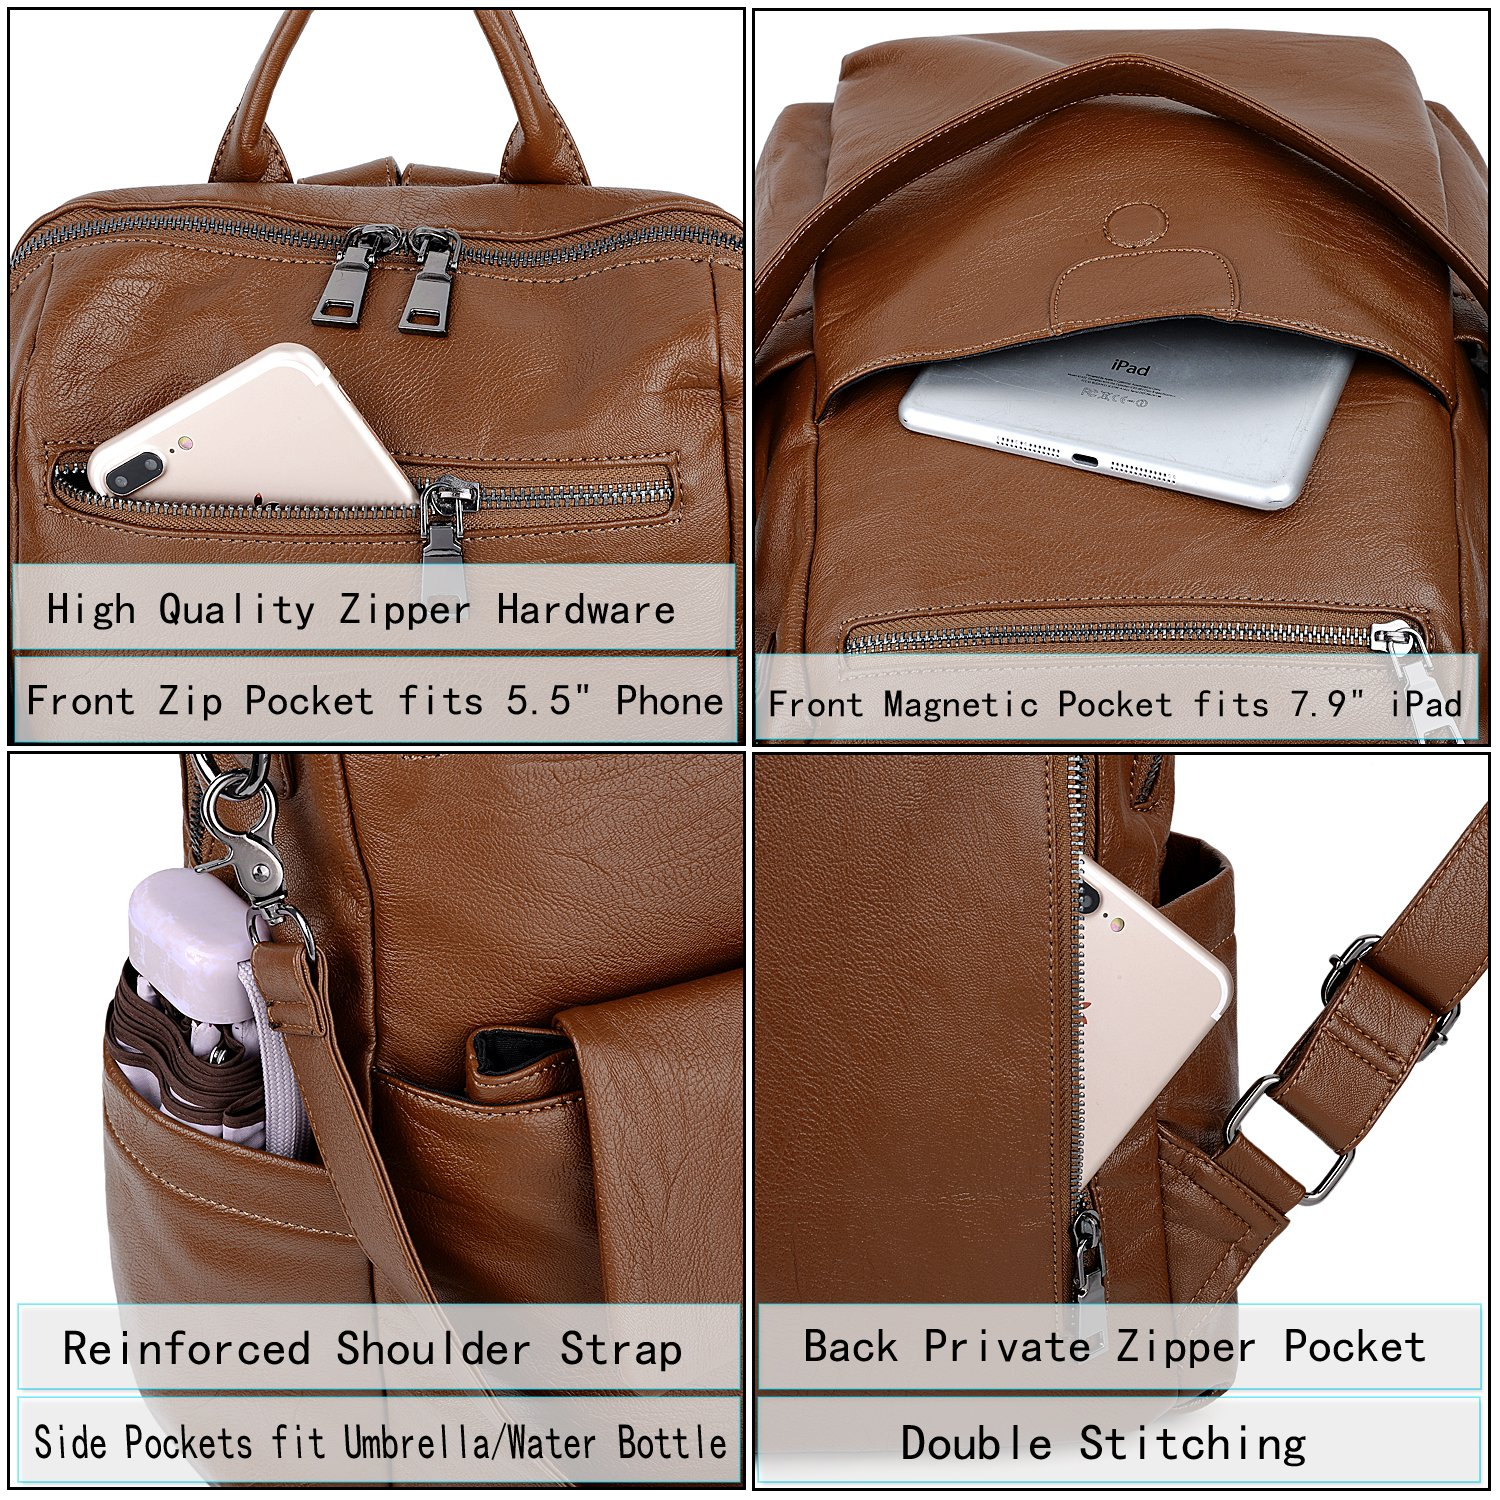 UTO Women Backpack Purse PU Washed Leather Ladies Rucksack Detachable Crossbody Shoulder Bag B Brown by UTO (Image #4)